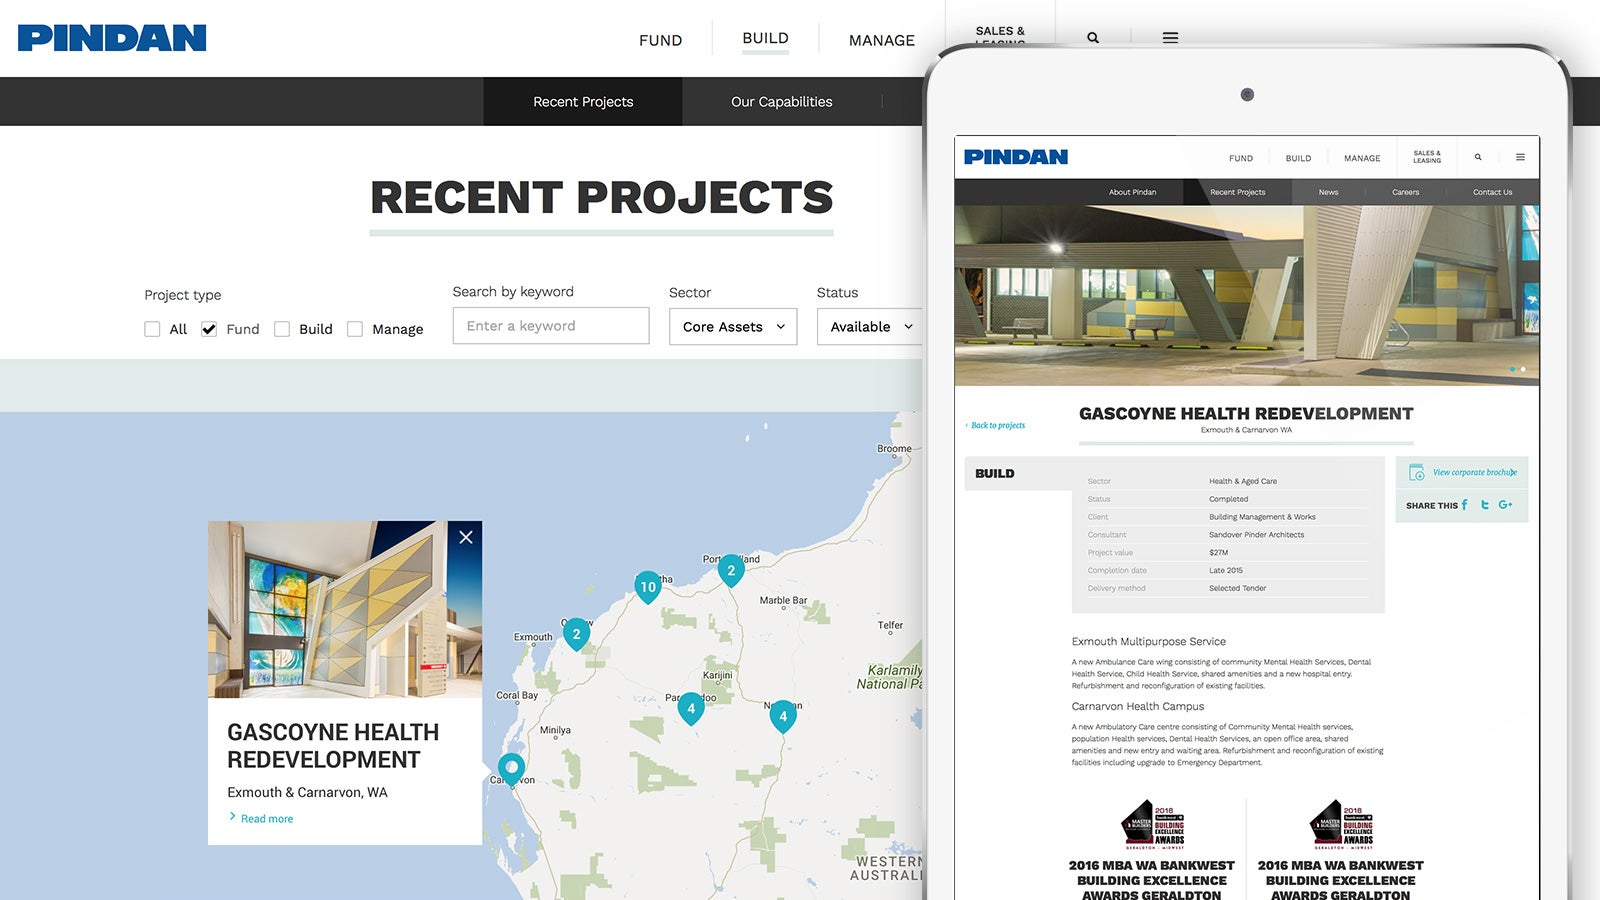 Pindan   recent projects website page and project details website page displayed on tablet   Devotion